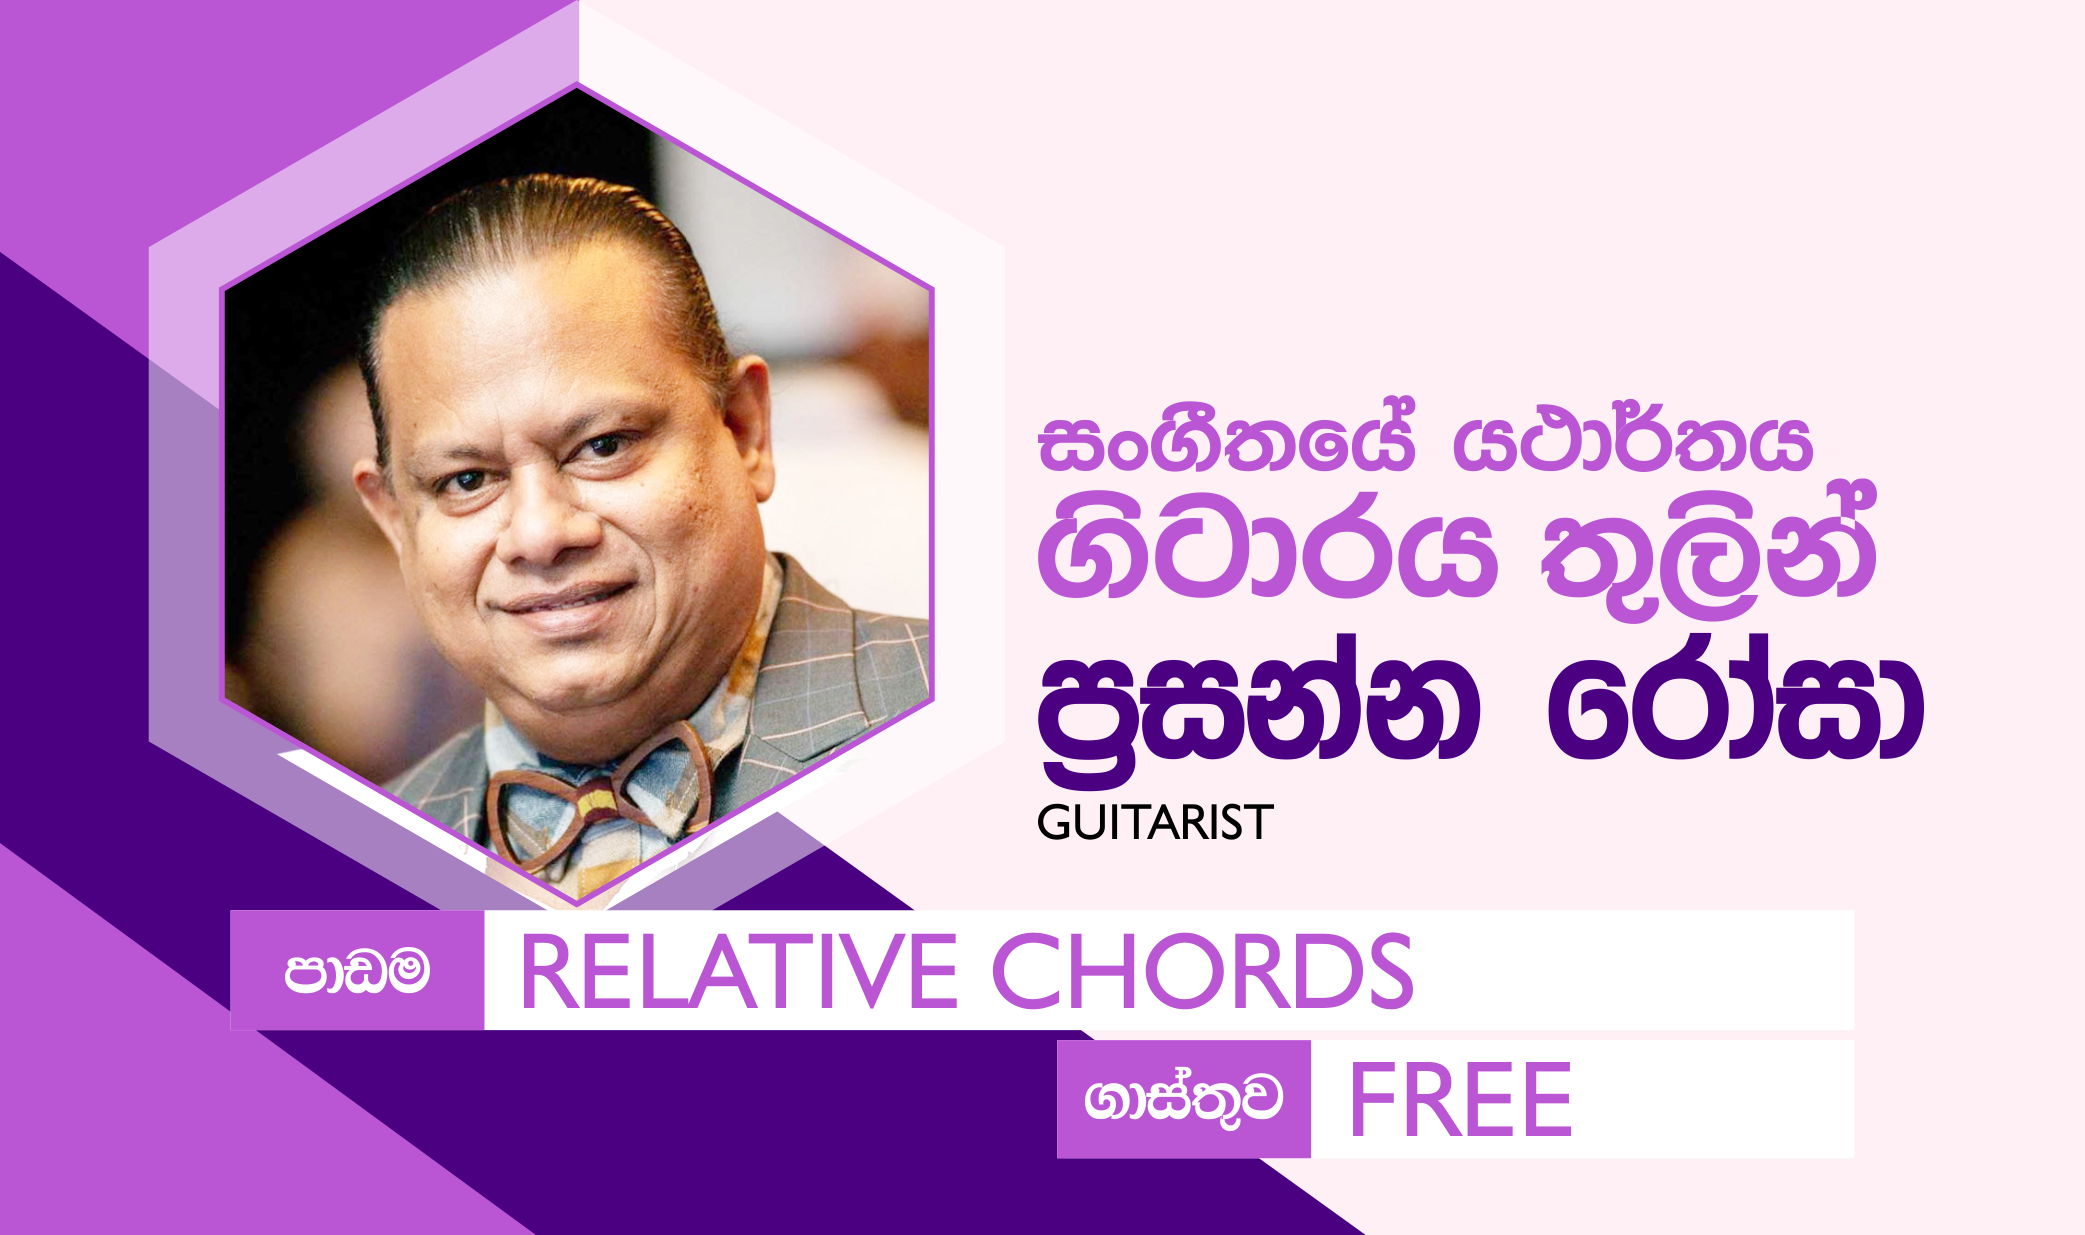 Guitar Practice - Relative Chords for Beginners [Course 03] - (ගිටාර් වාදන පුහුණුව - Relative Chords)